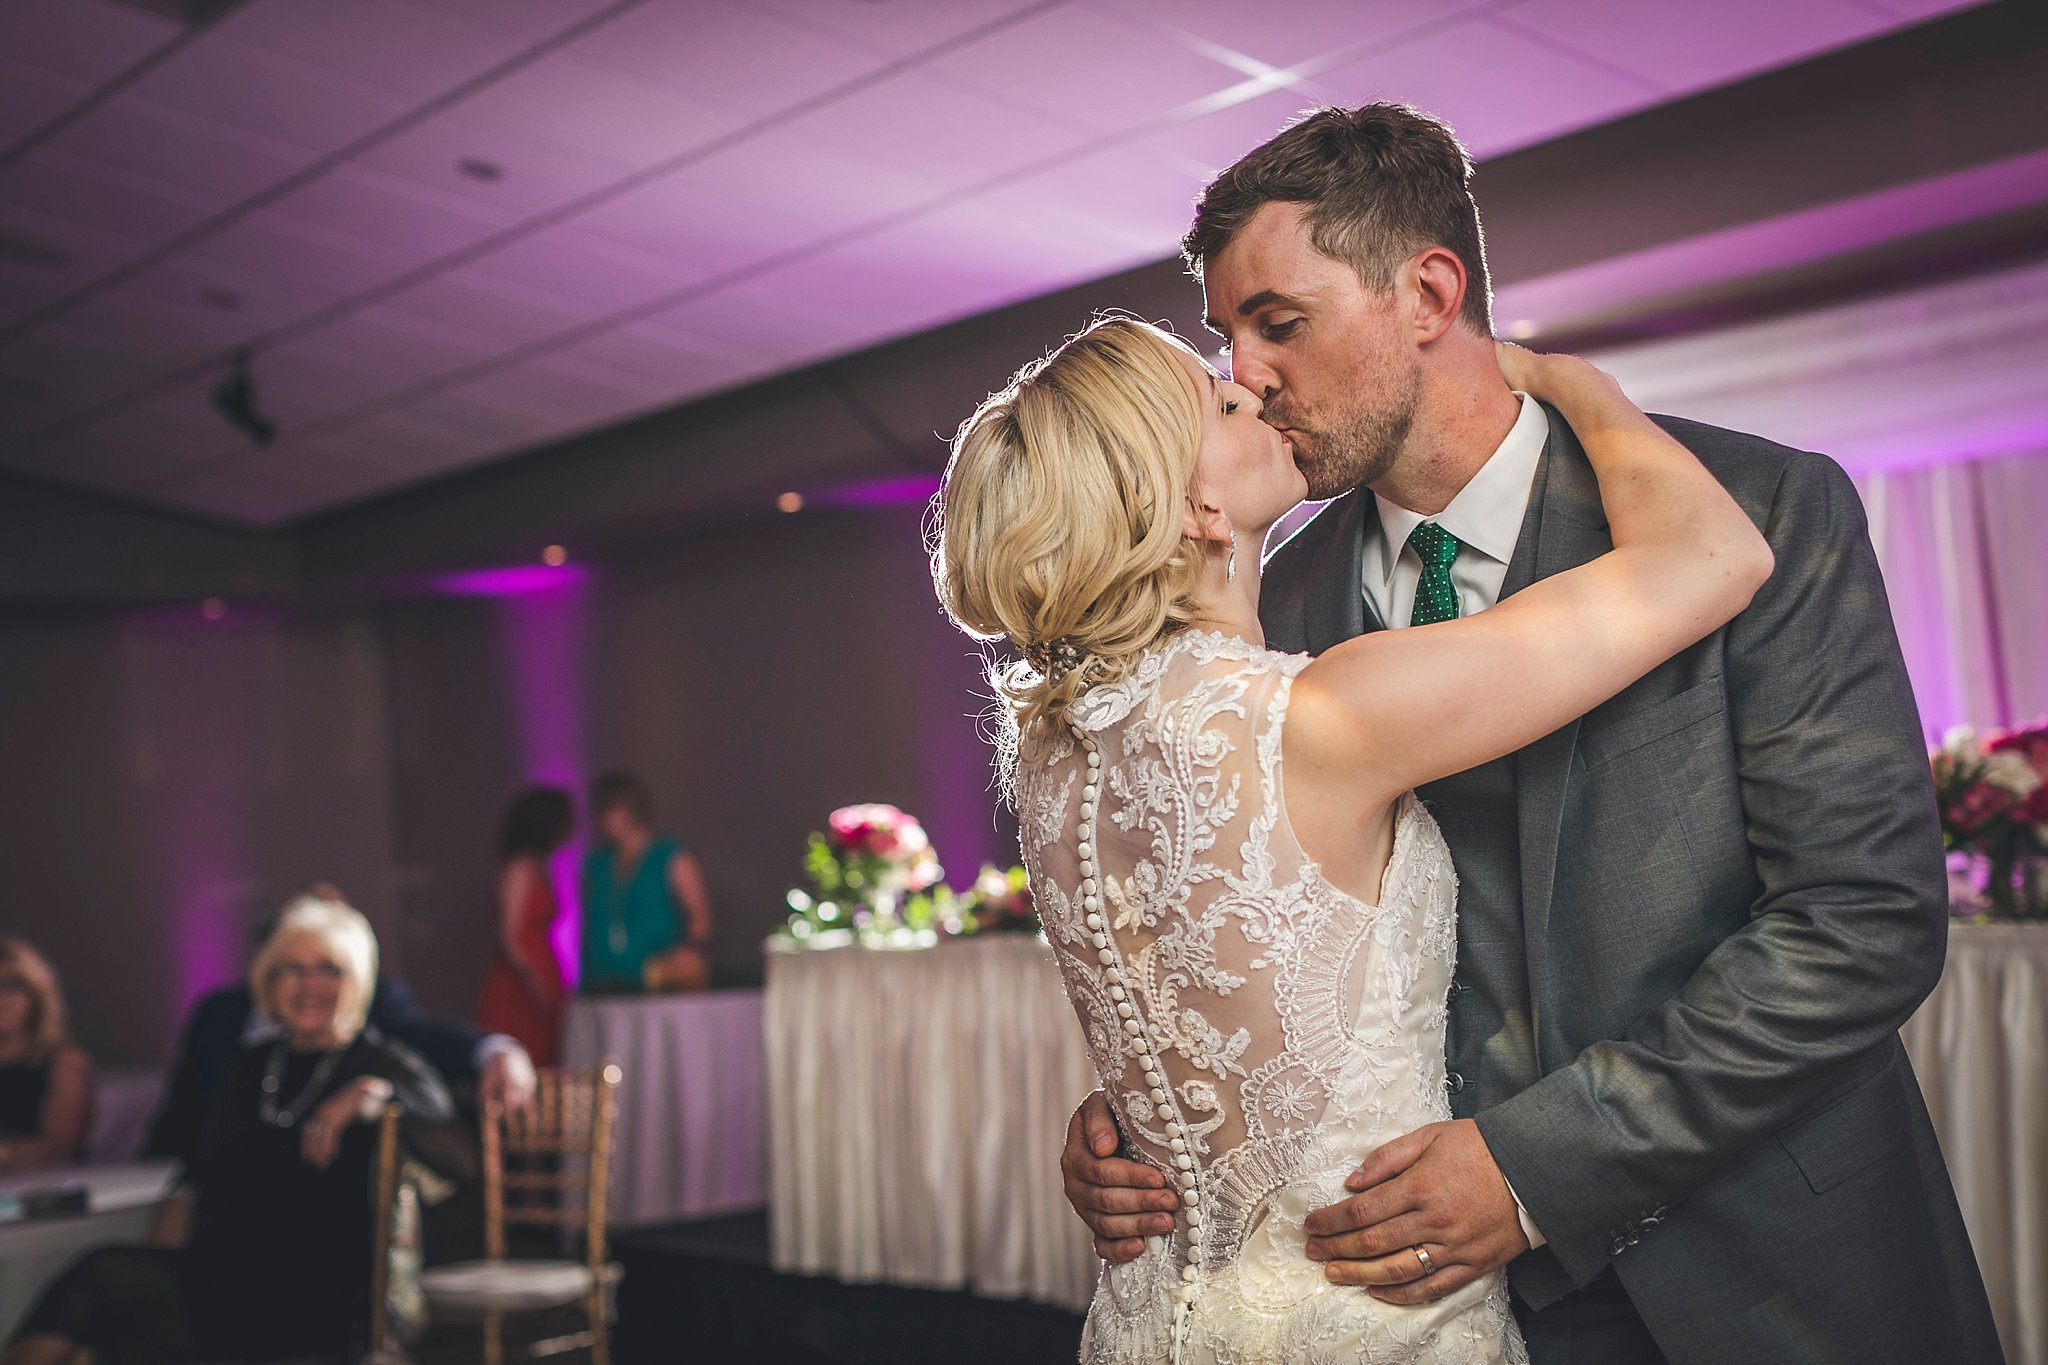 Bride and groom share a kiss during their first dance at their Newfoundland wedding held in St. John's